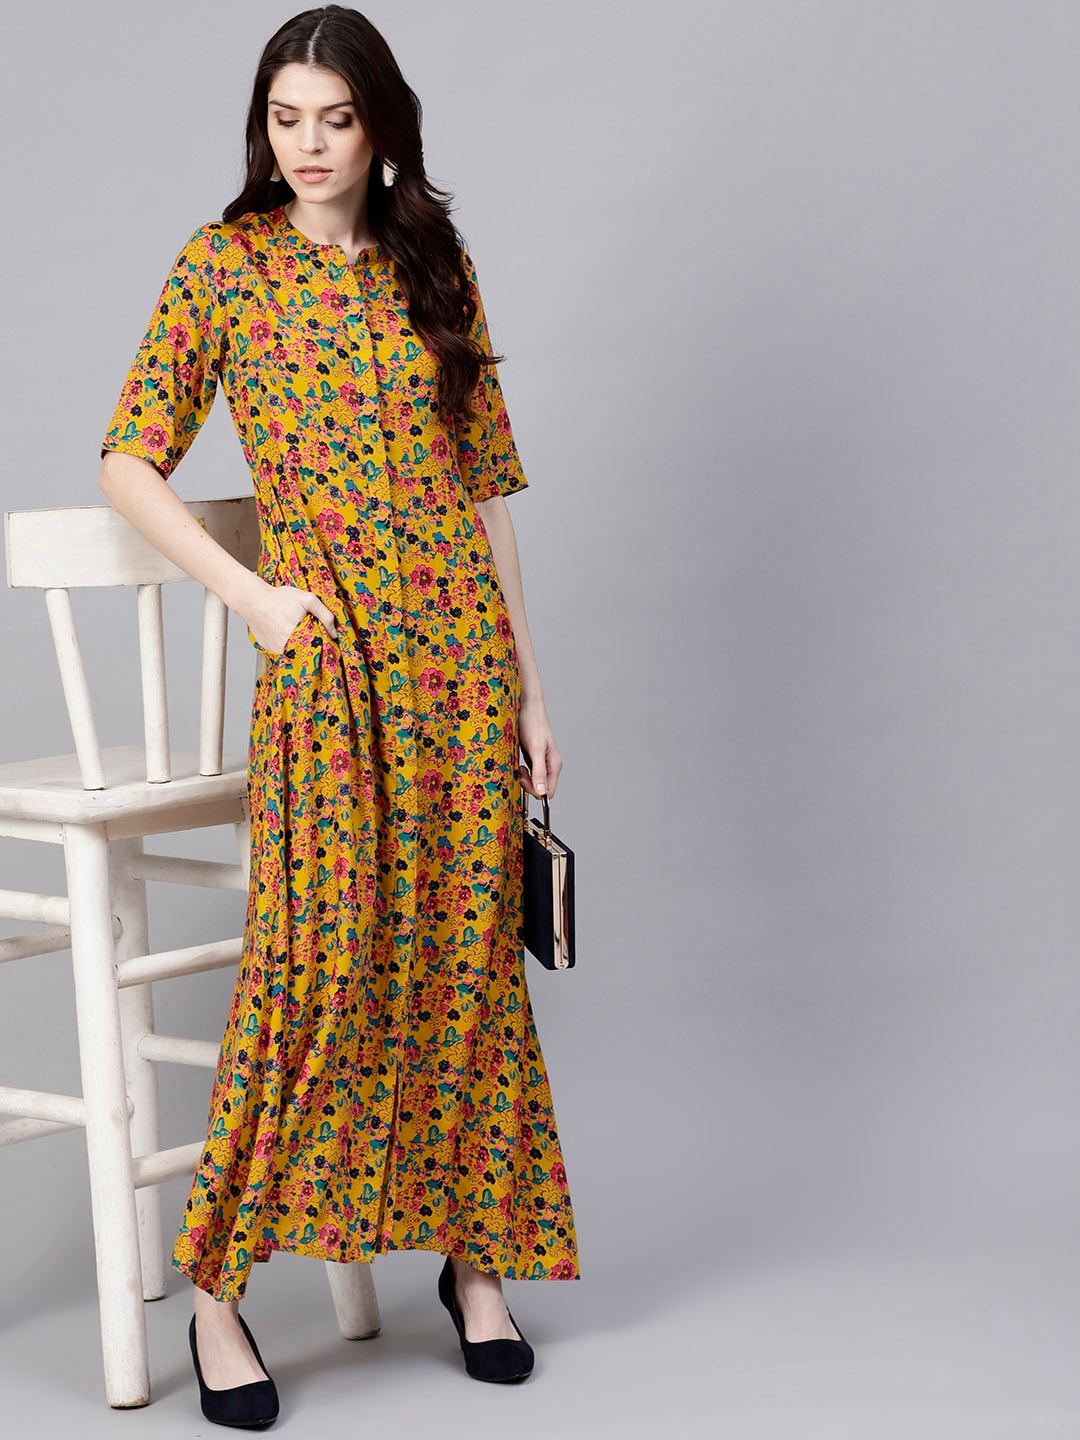 7331efb5981 Aks Mustard Yellow Printed Maxi Dress for women price in India on ...